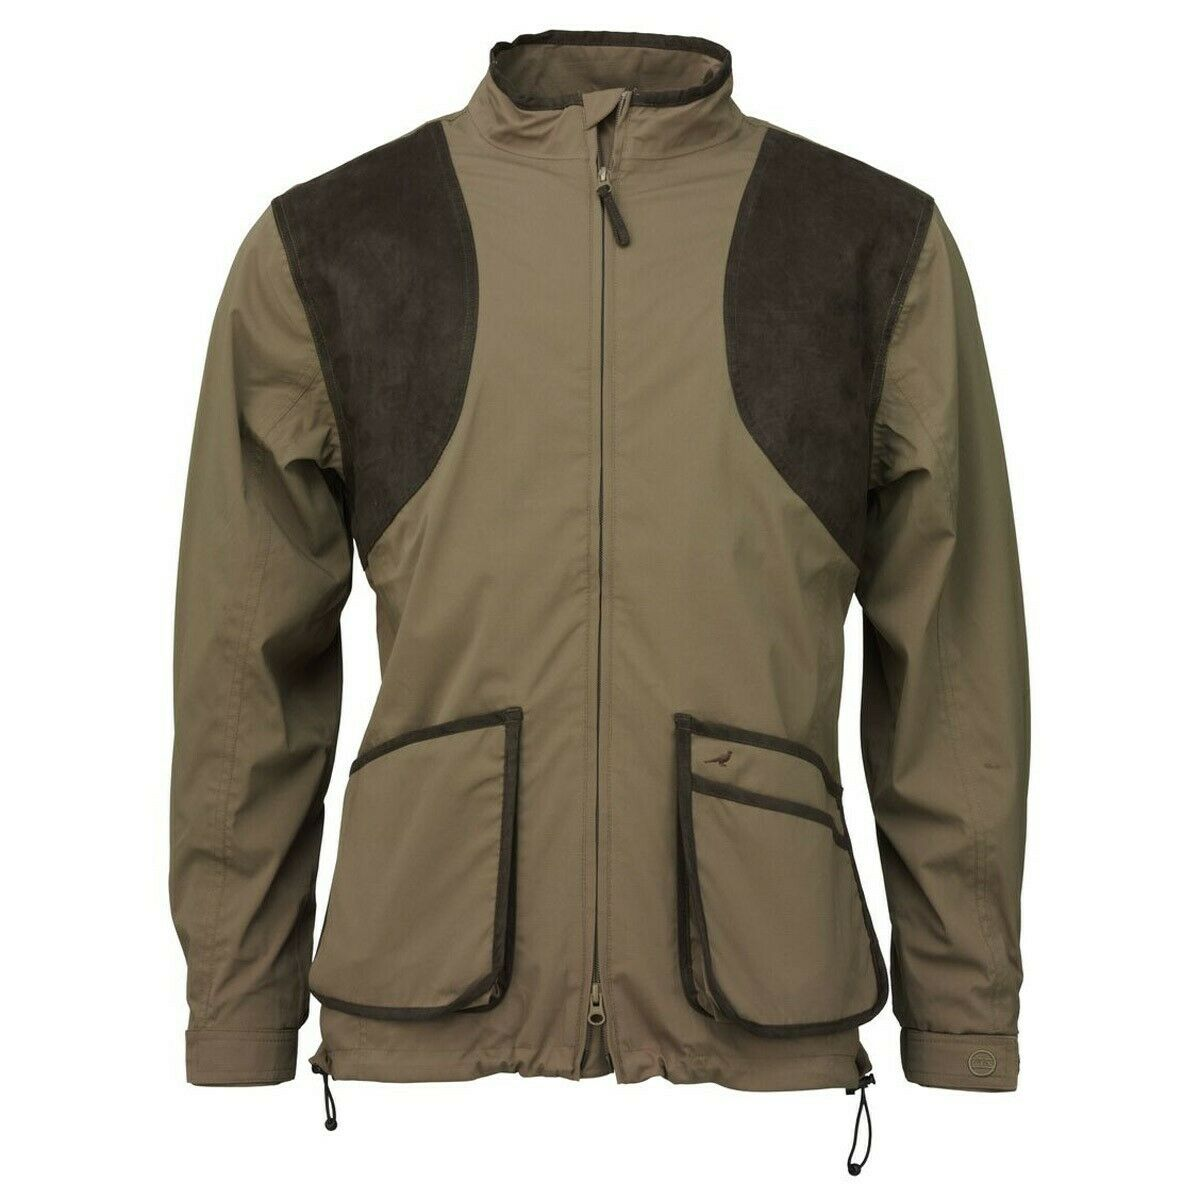 Mens Laksen Clay Shooting Jacket with Mesh Lining in Navy & Grün - All Größes